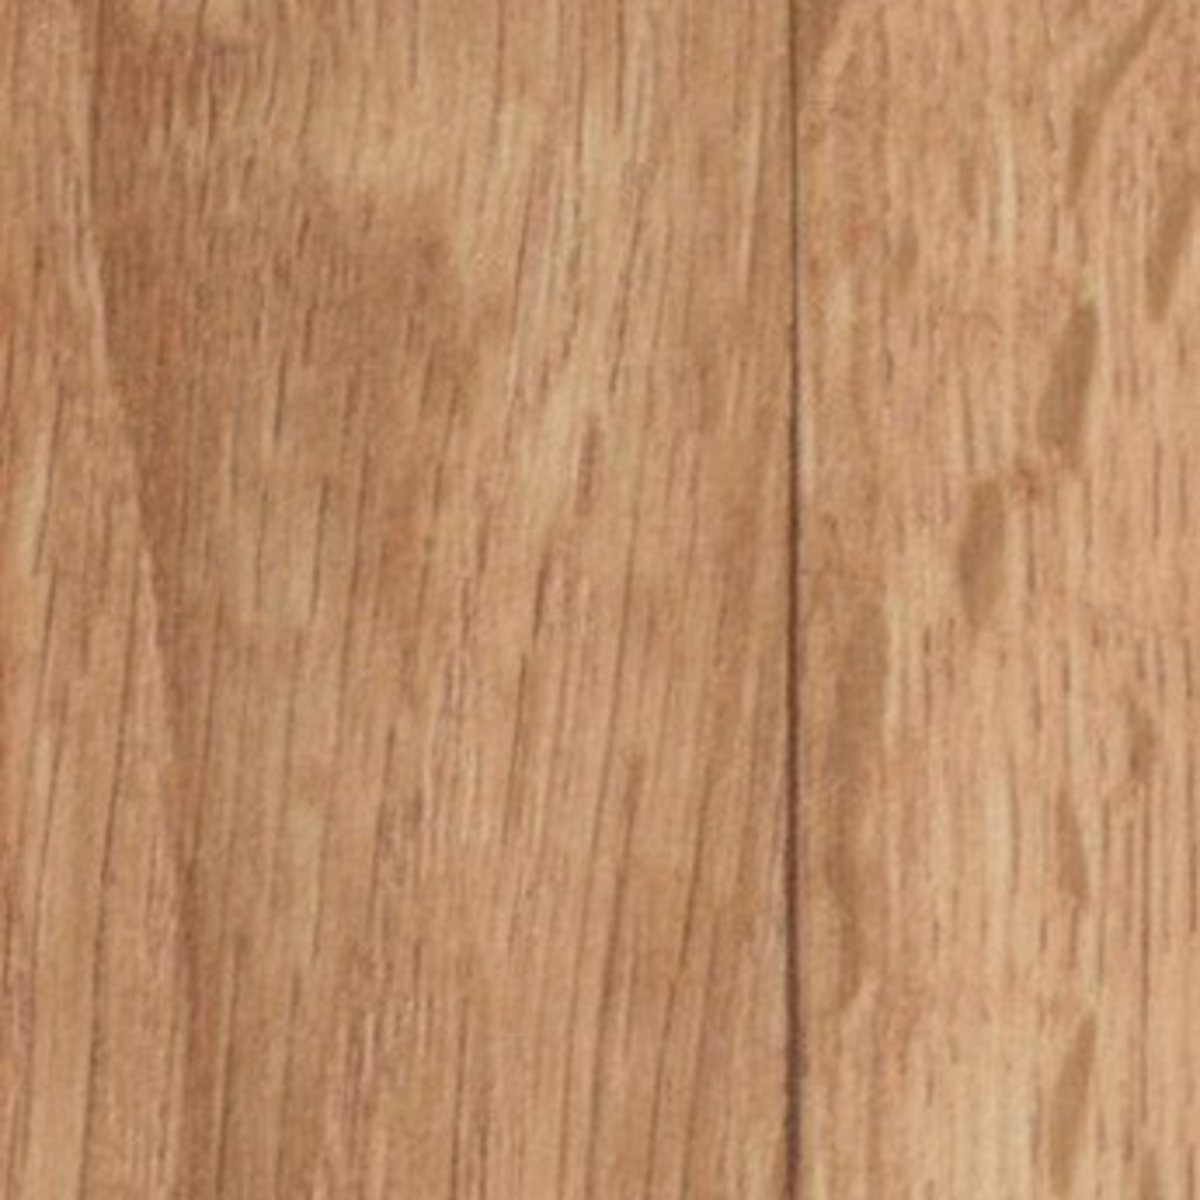 Titan Range in Stately Oak